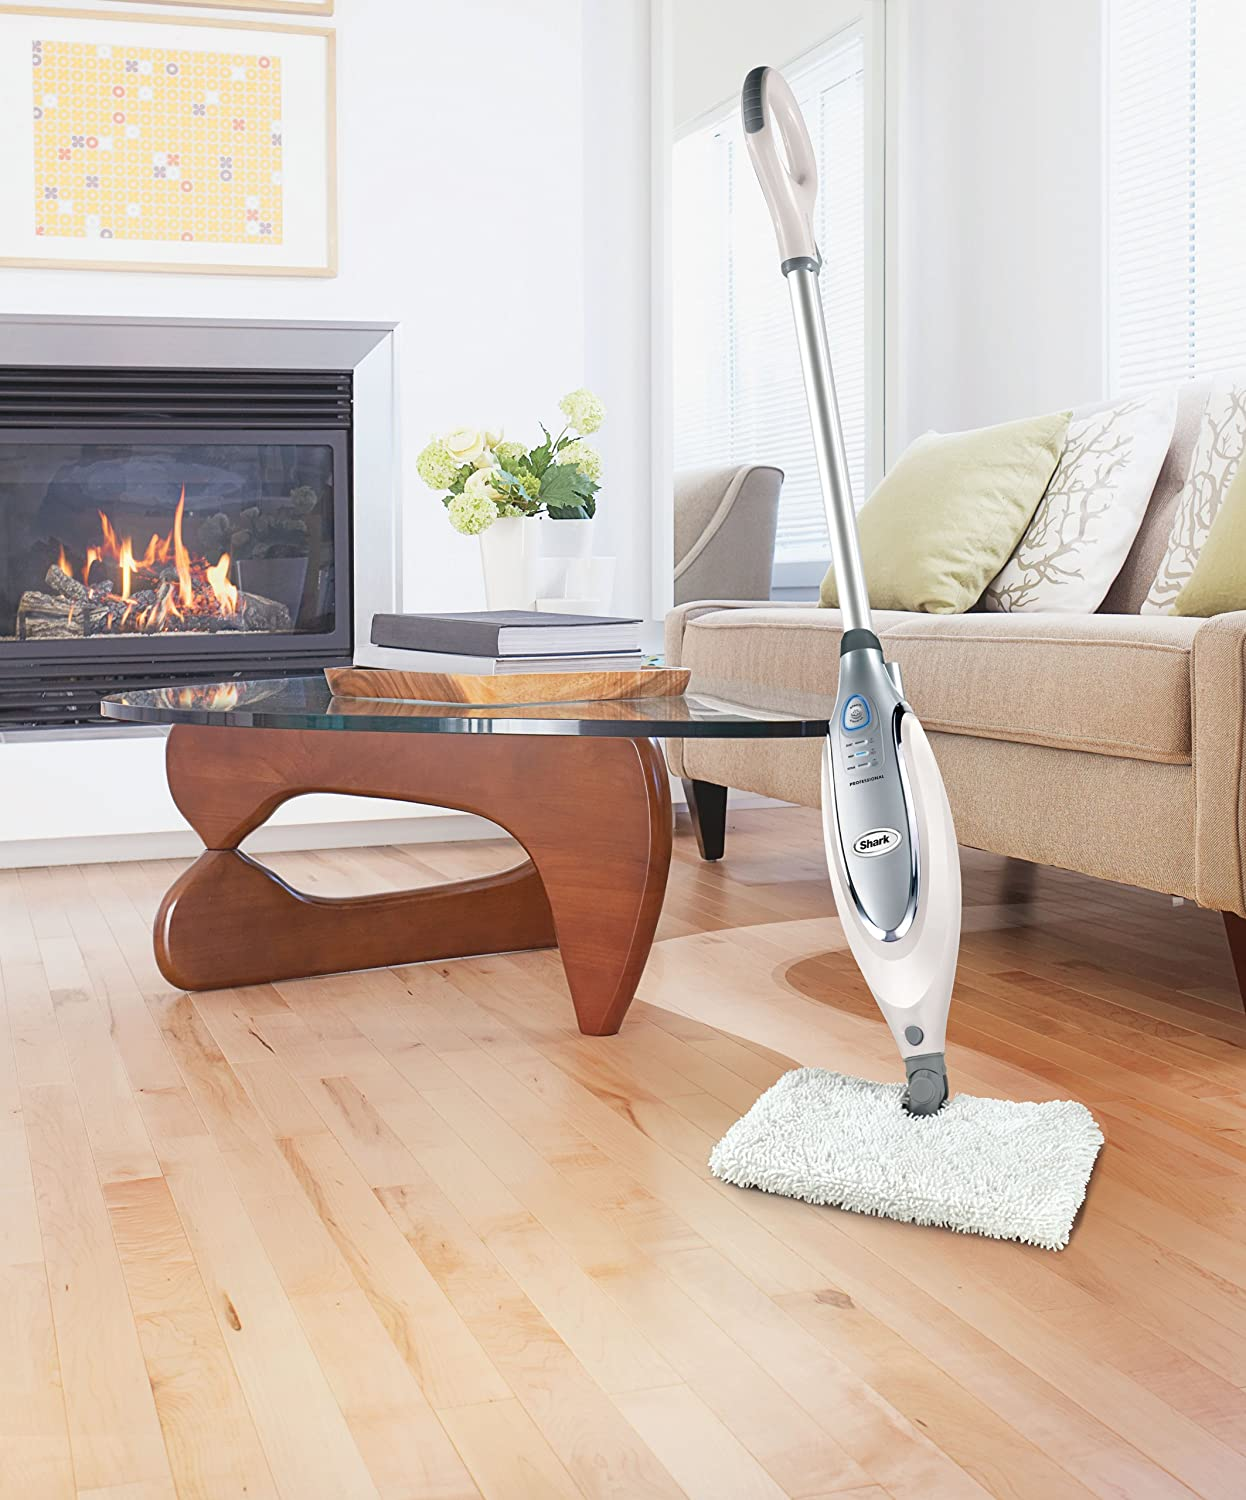 Amazon shark professional steam pocket mop s3601d floor amazon shark professional steam pocket mop s3601d floor cleaners dailygadgetfo Image collections